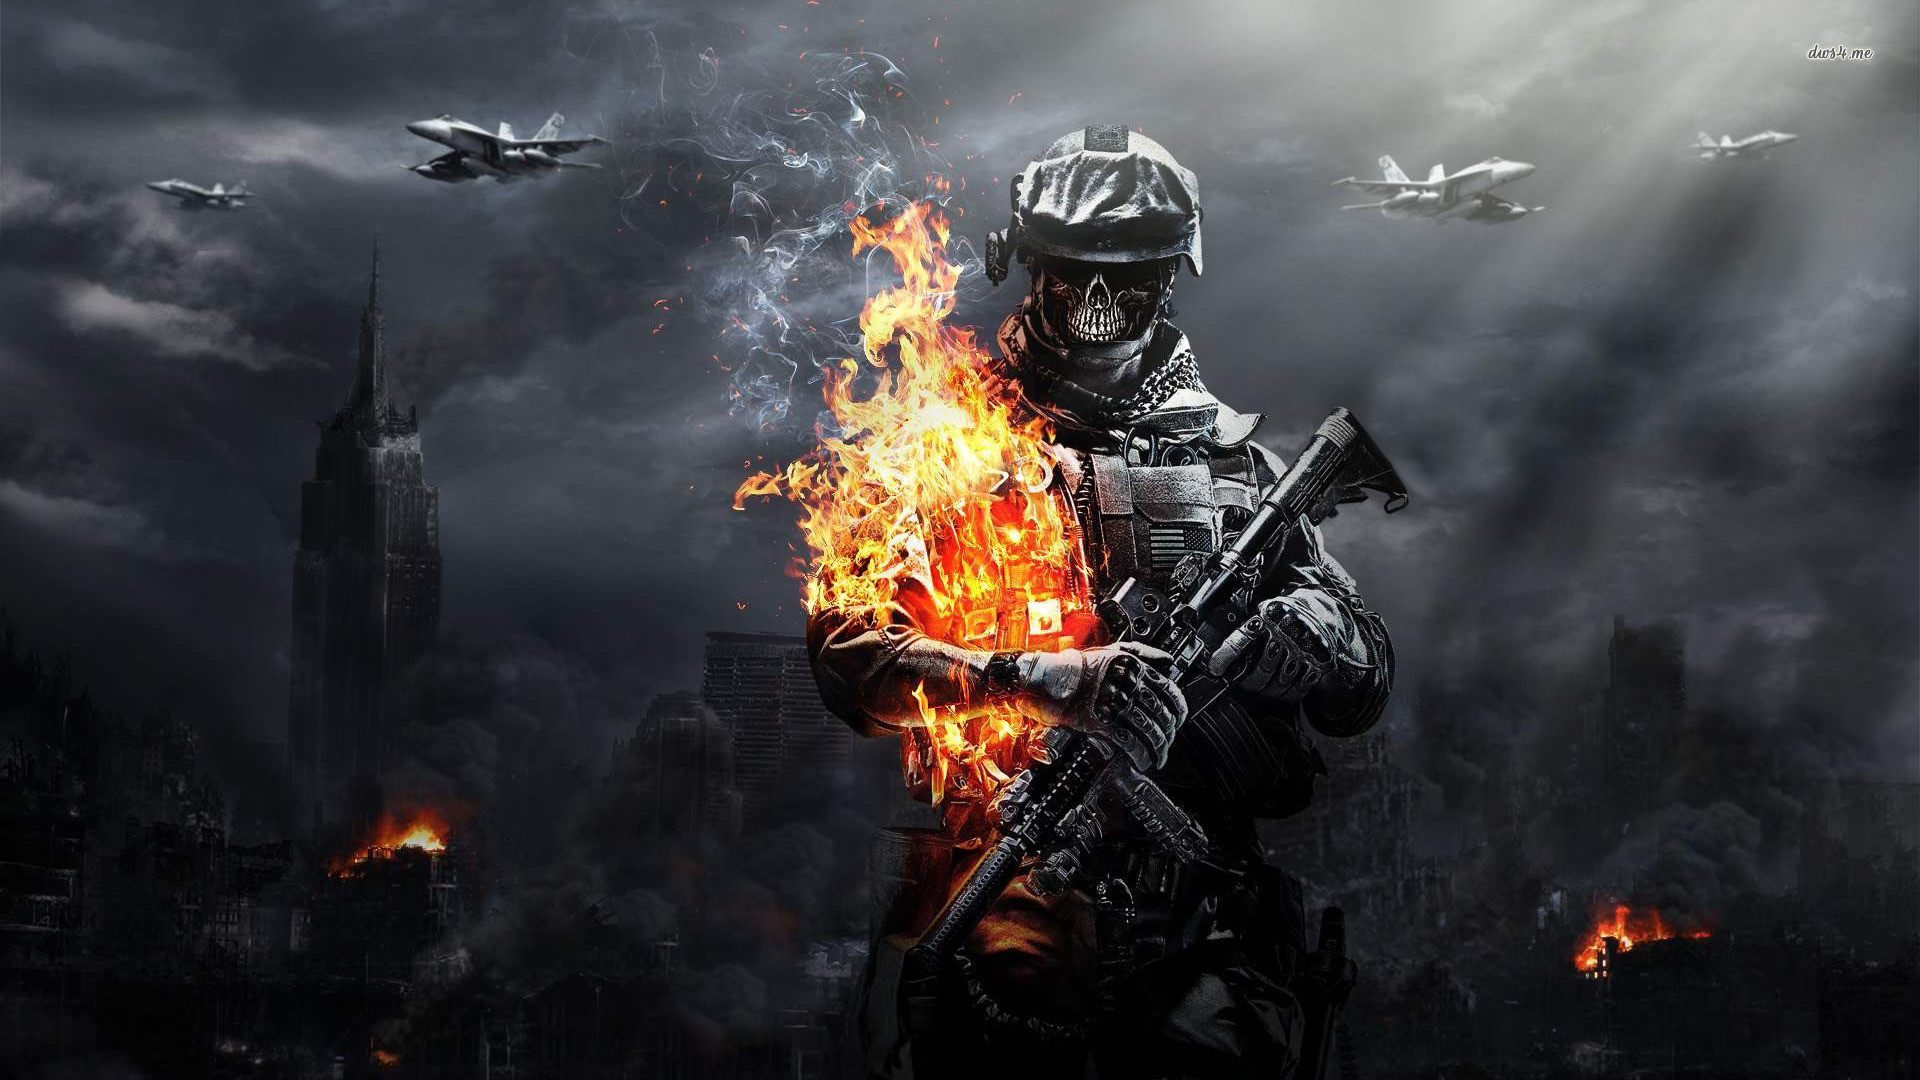 1920x1080 hd wallpapers battlefield 4 80 images - Bf4 wallpaper ...